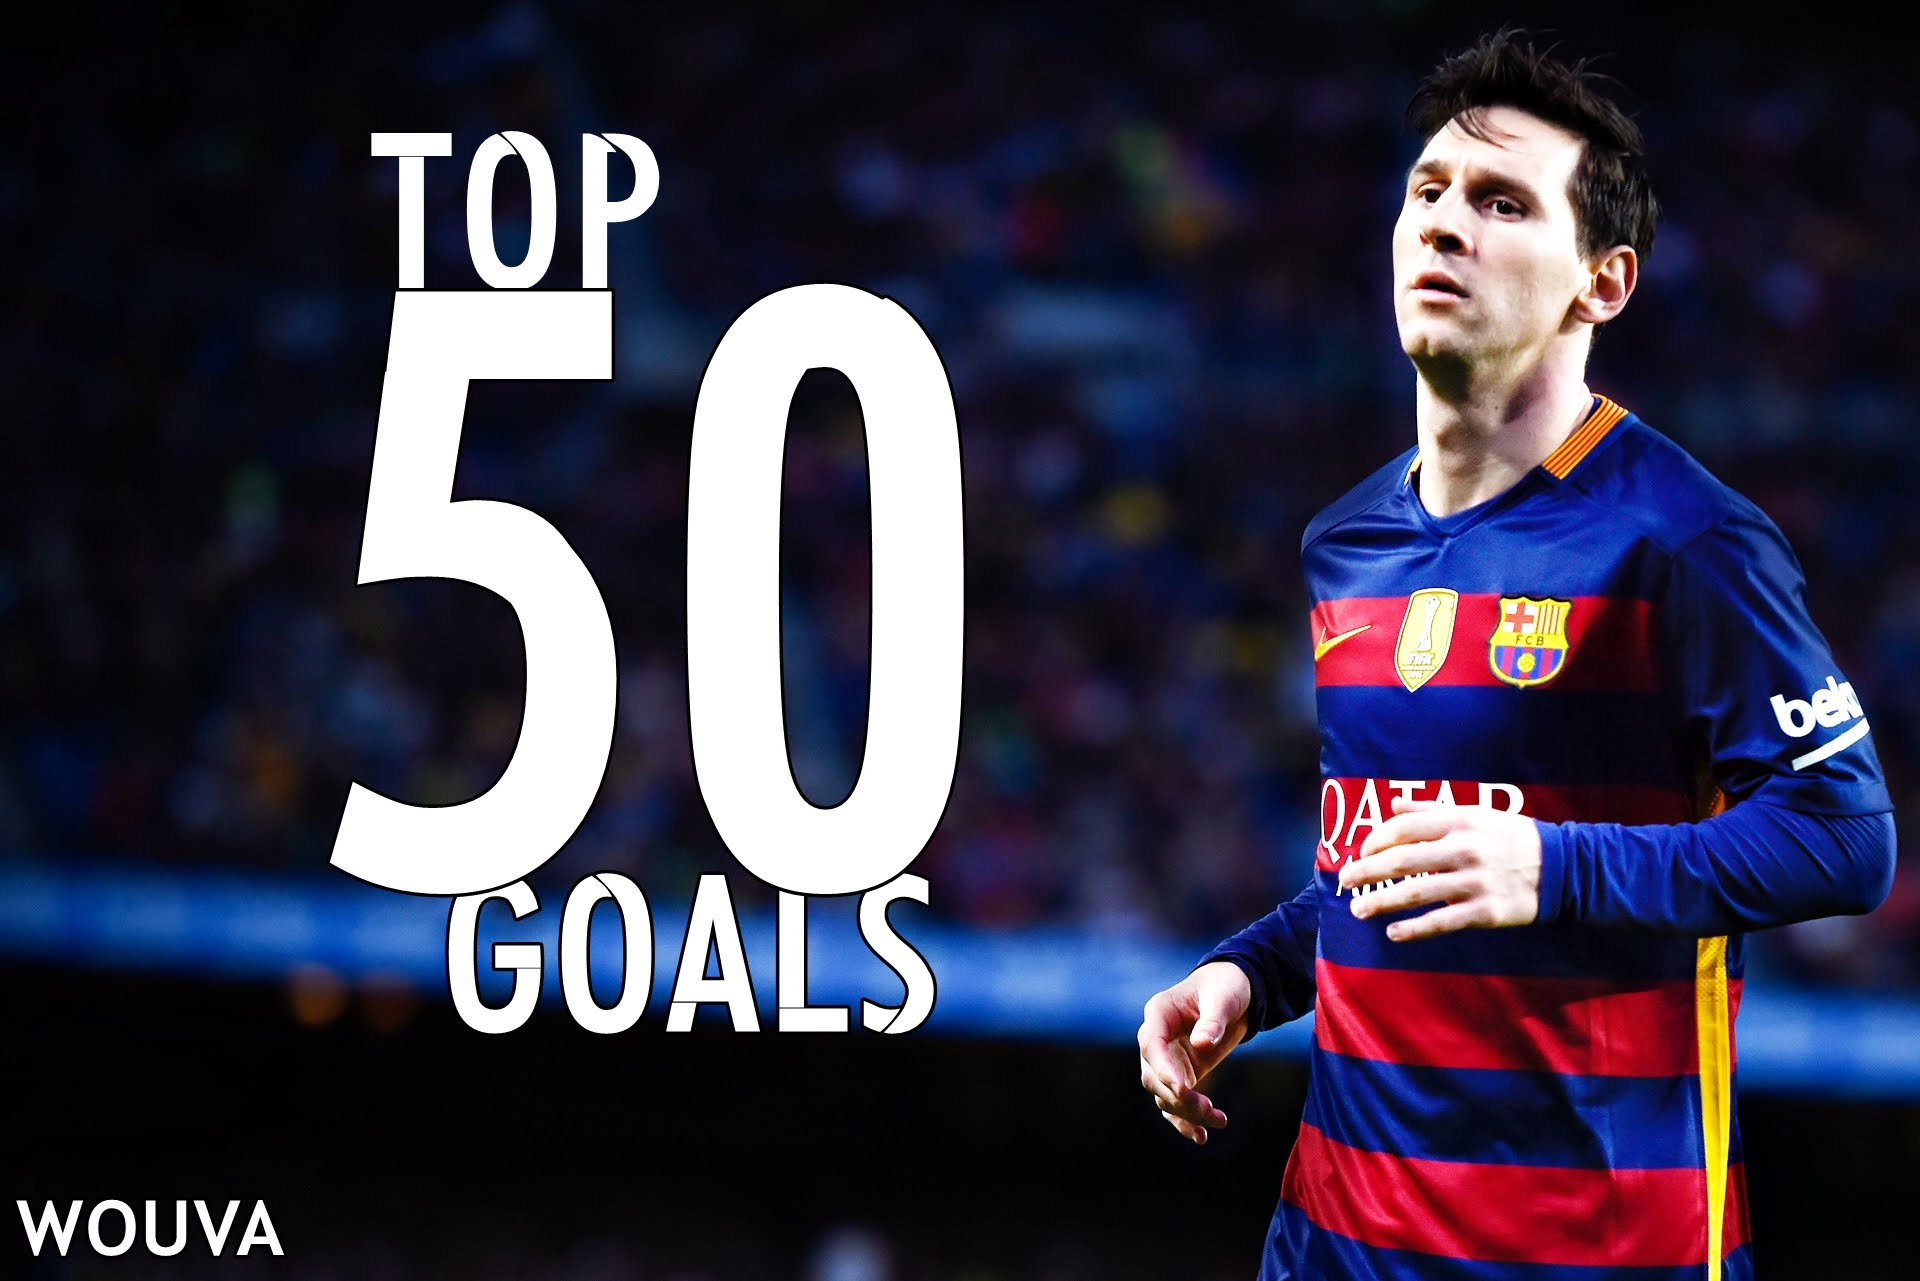 Messi - VIDEO: Top 50 Best Goals By Lionel Messi (2004 - 2017)